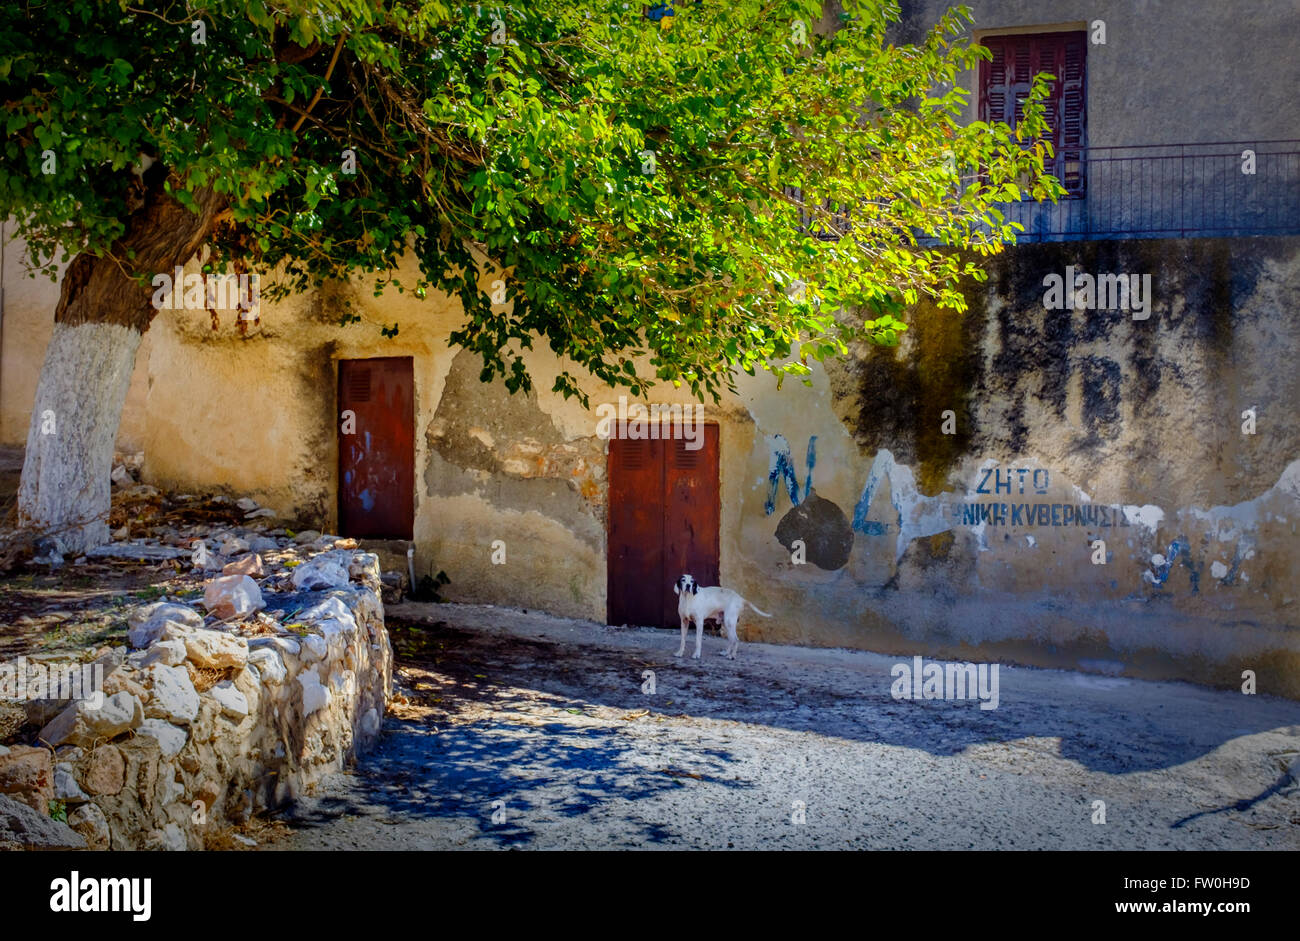 Picturesque Gerolimenas quiet street scene in the Peloponnese, Greece, showing dog and dwelling - Stock Image